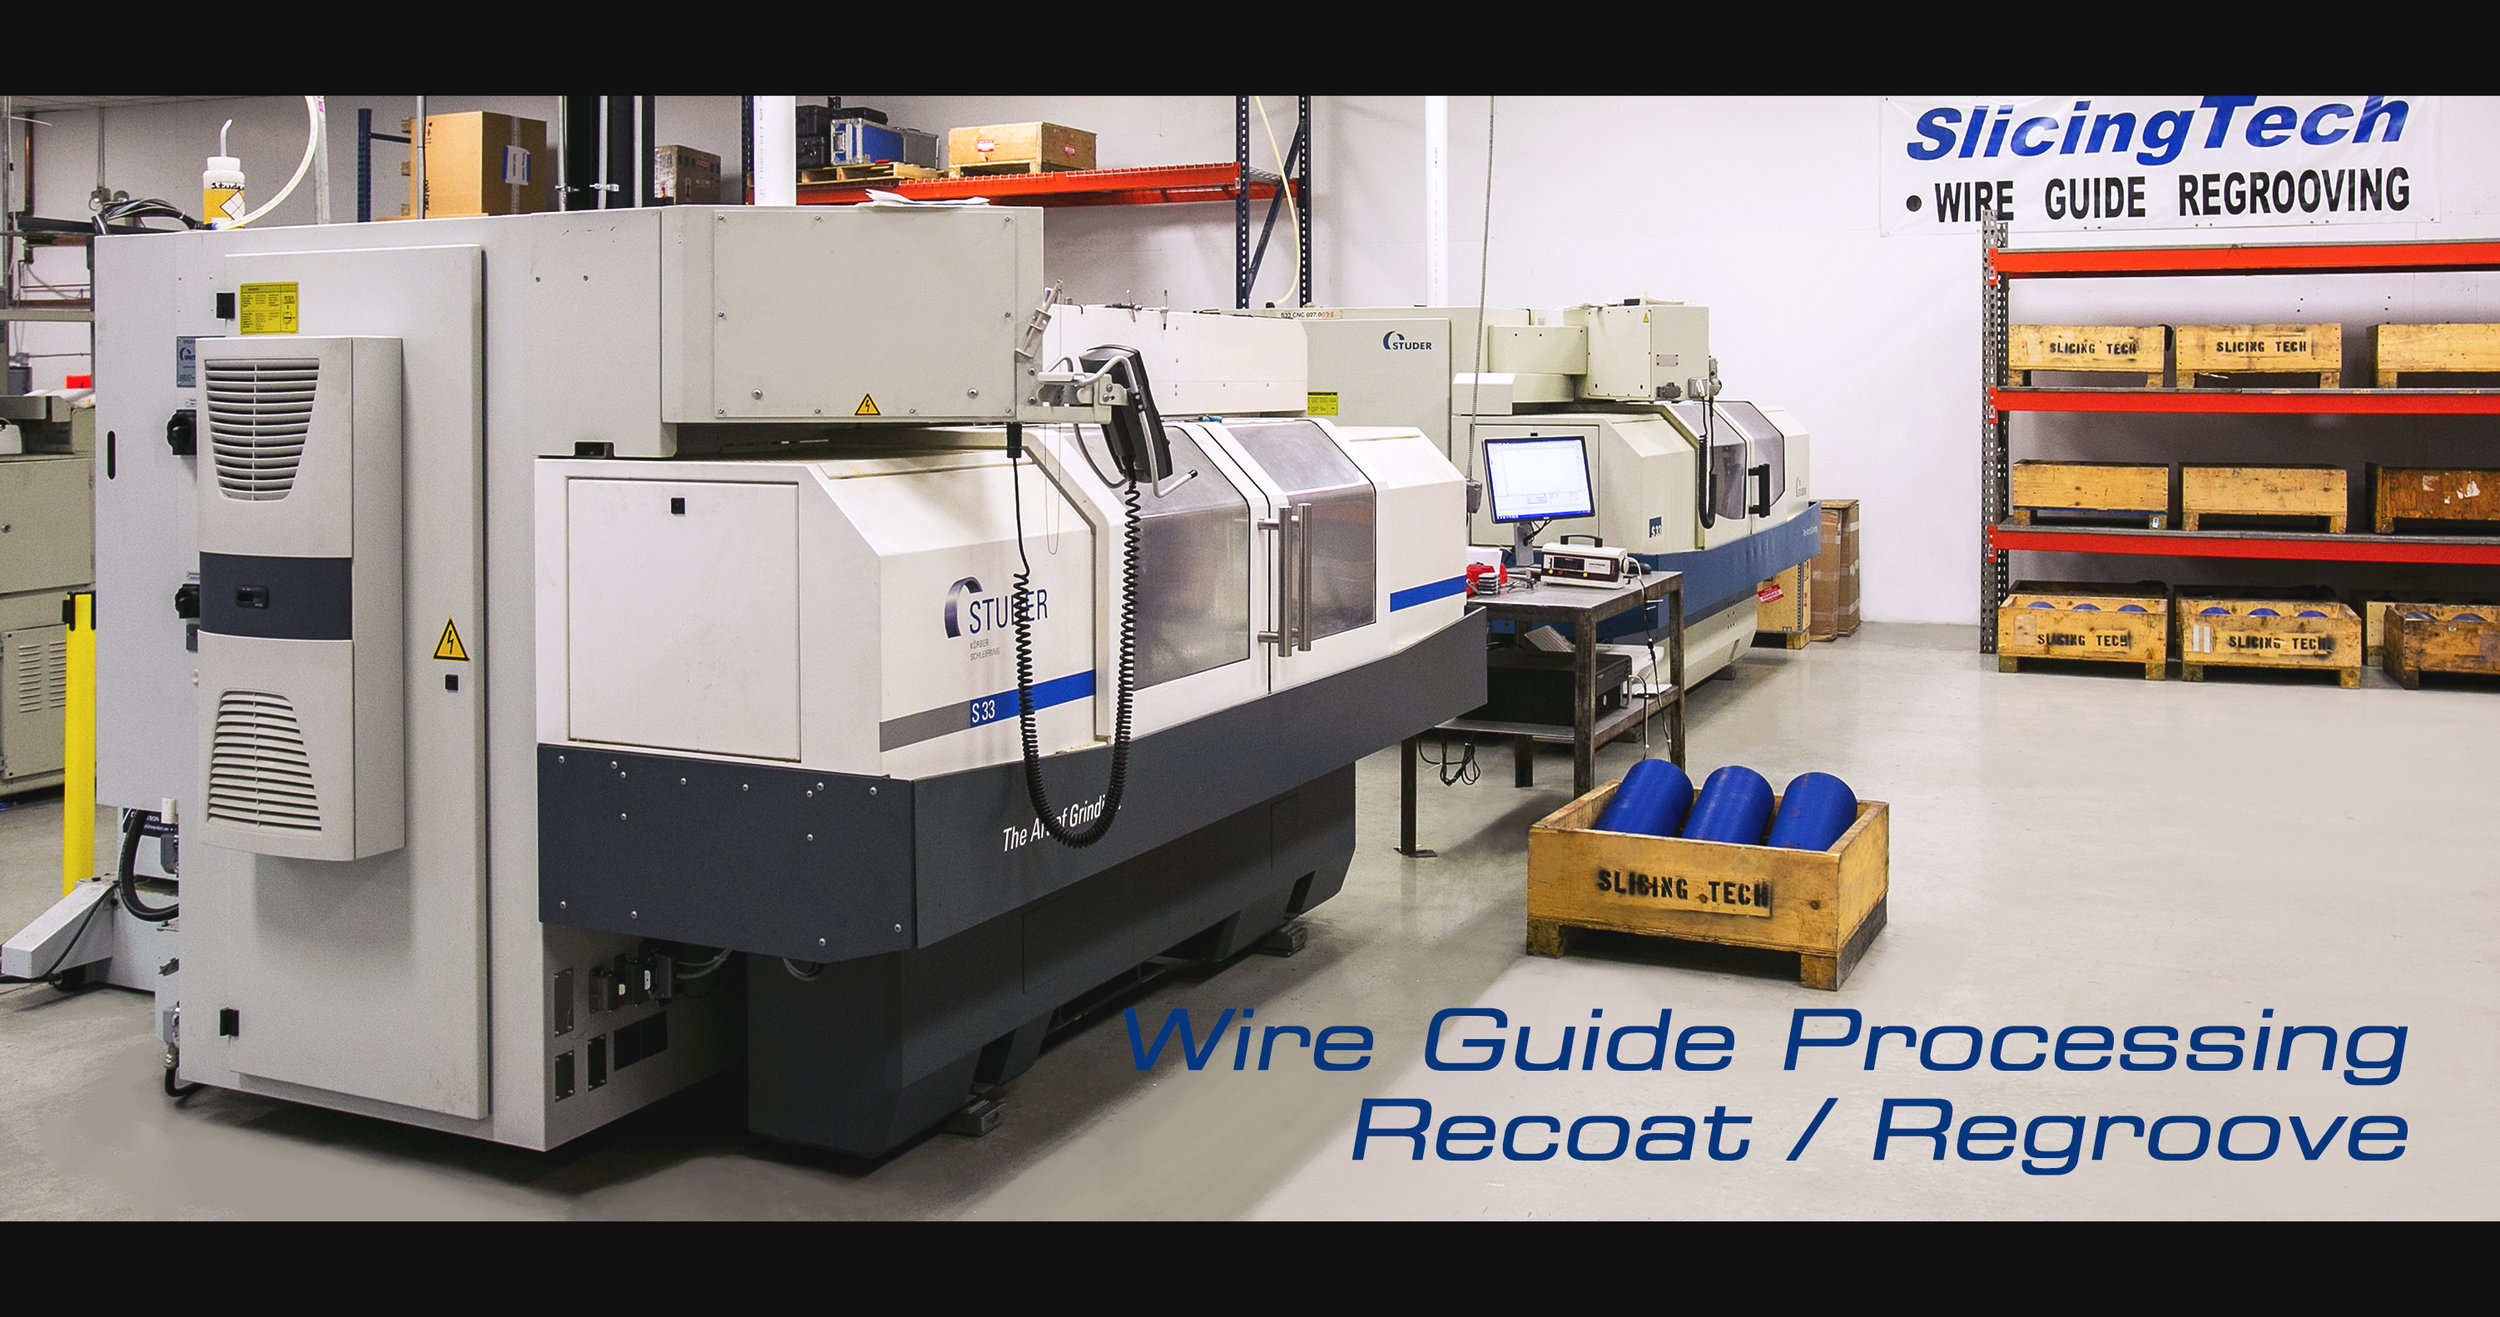 SlicingTech Wire Guide Reprocessing, Recoating and Reproving